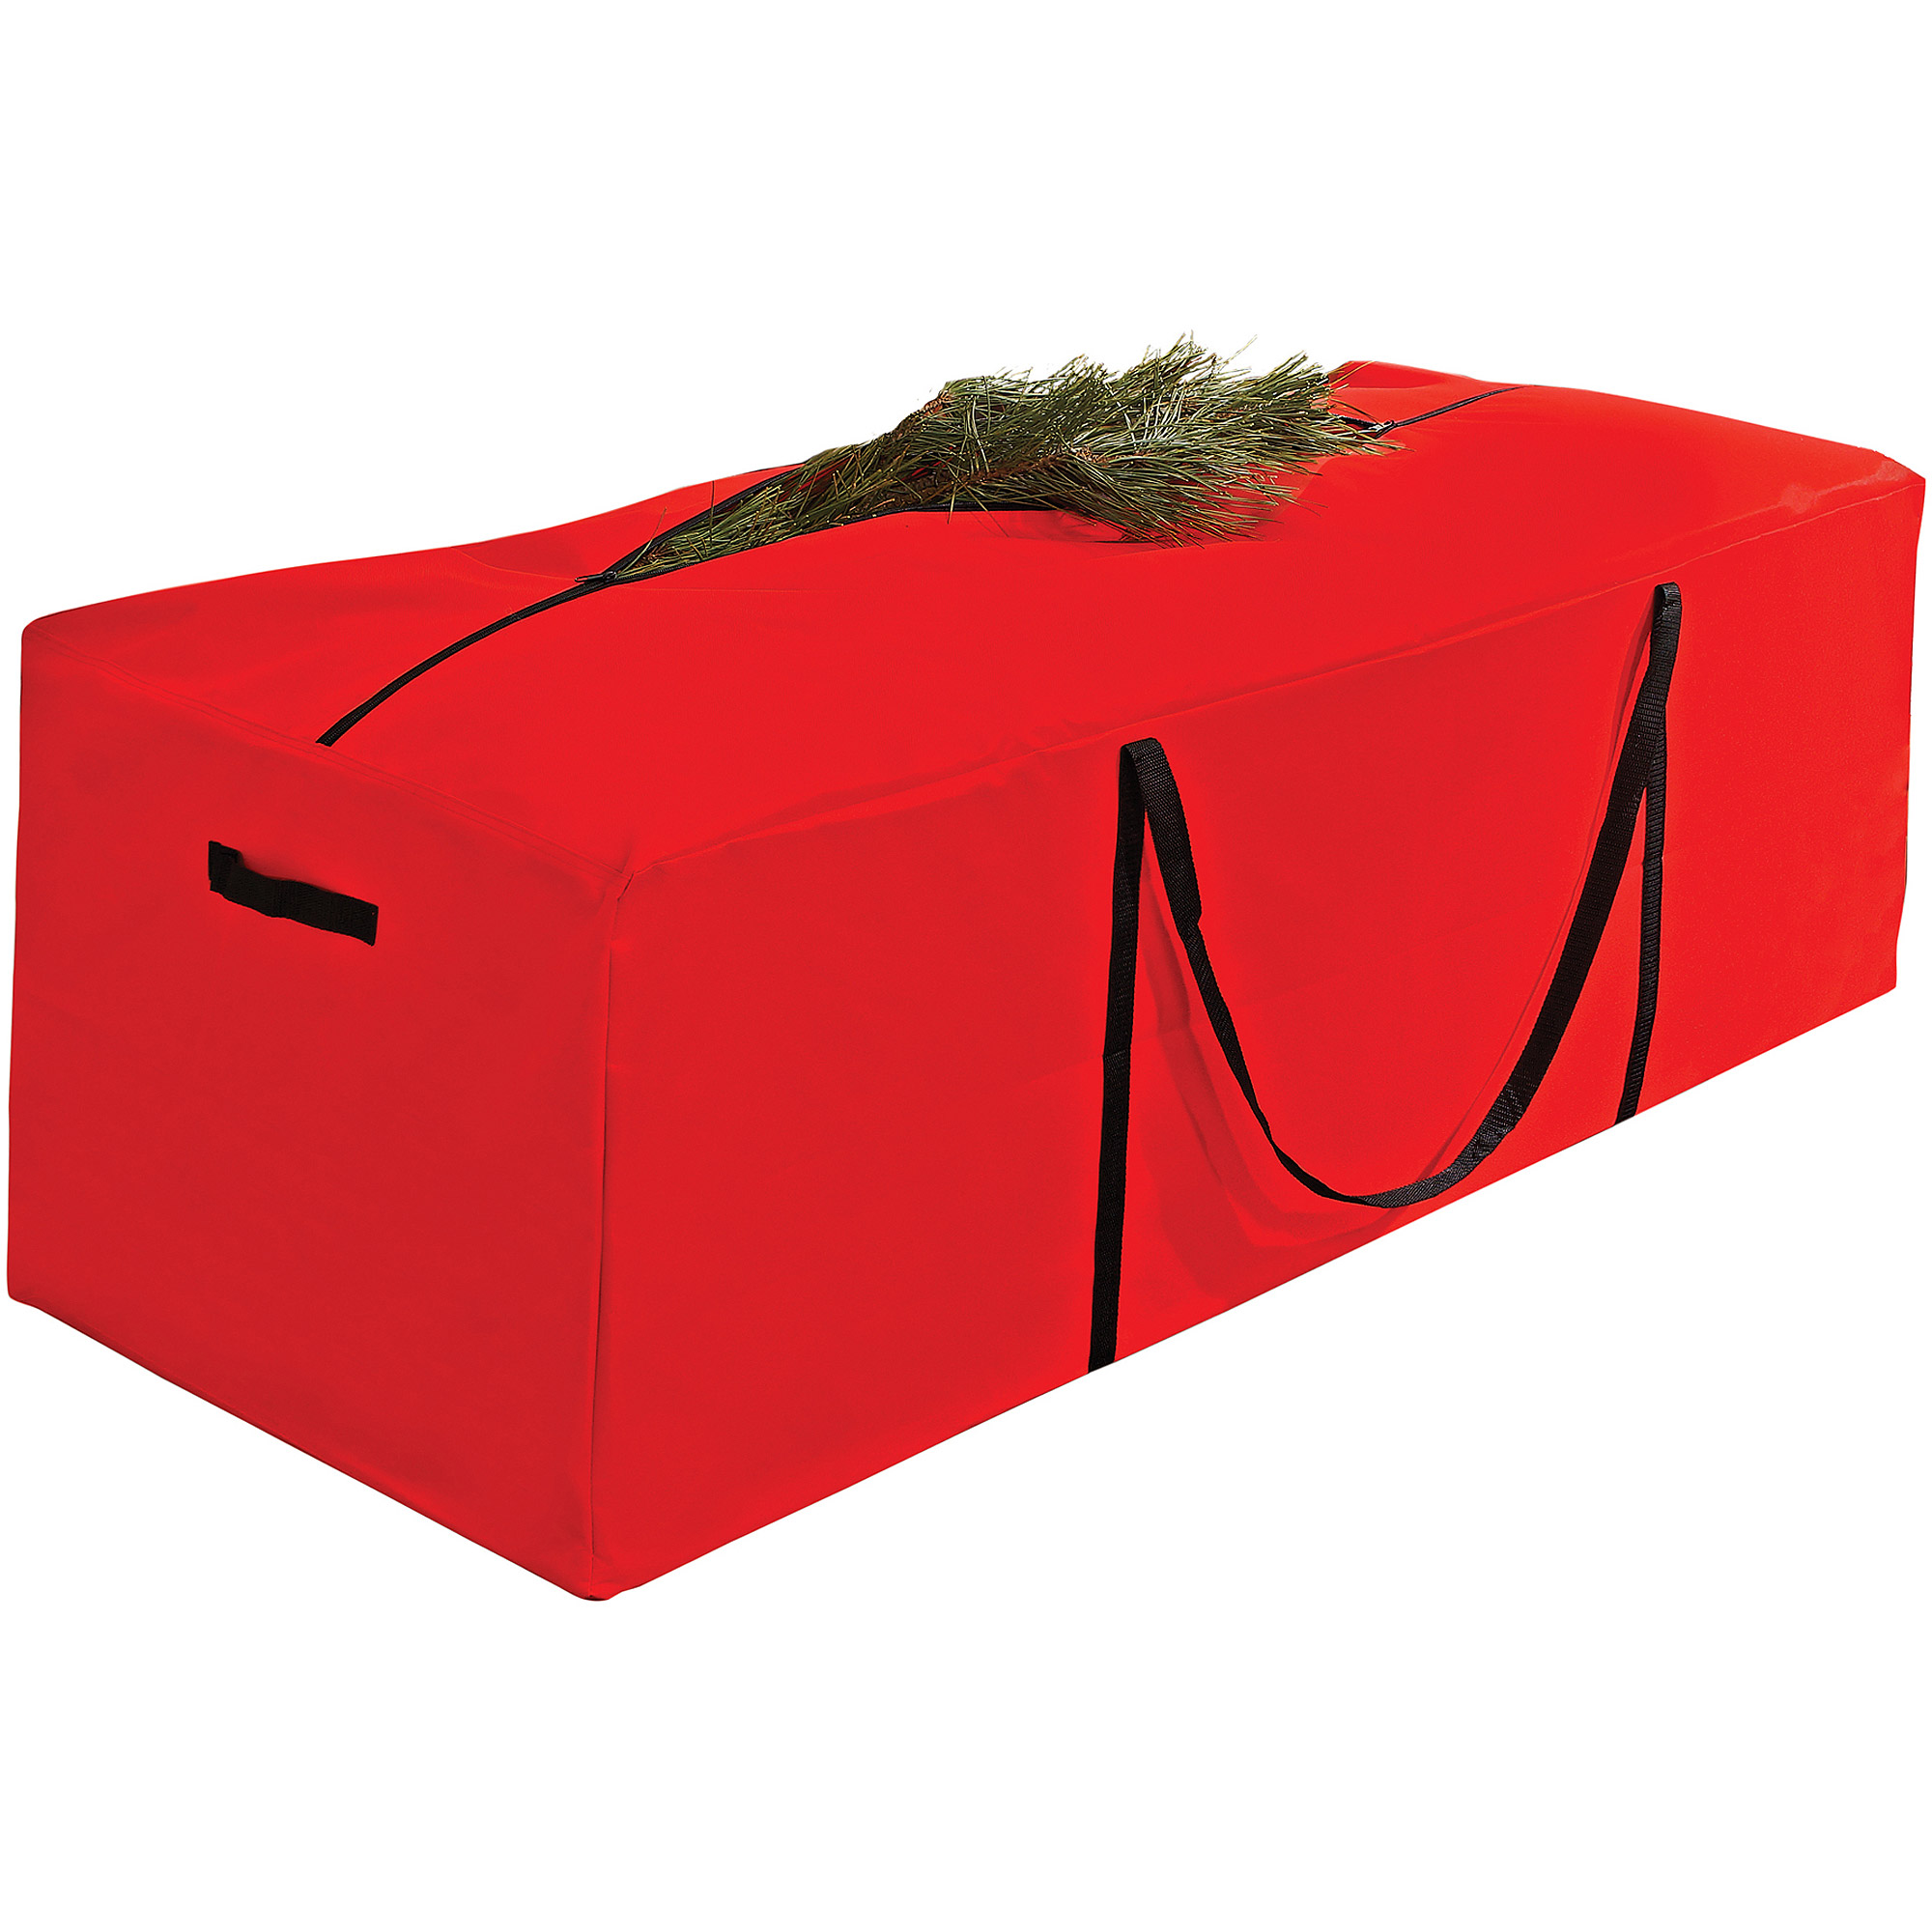 Simplify Christmas Tree Storage Bag, Holds 9.5' Artificial Tree, Red